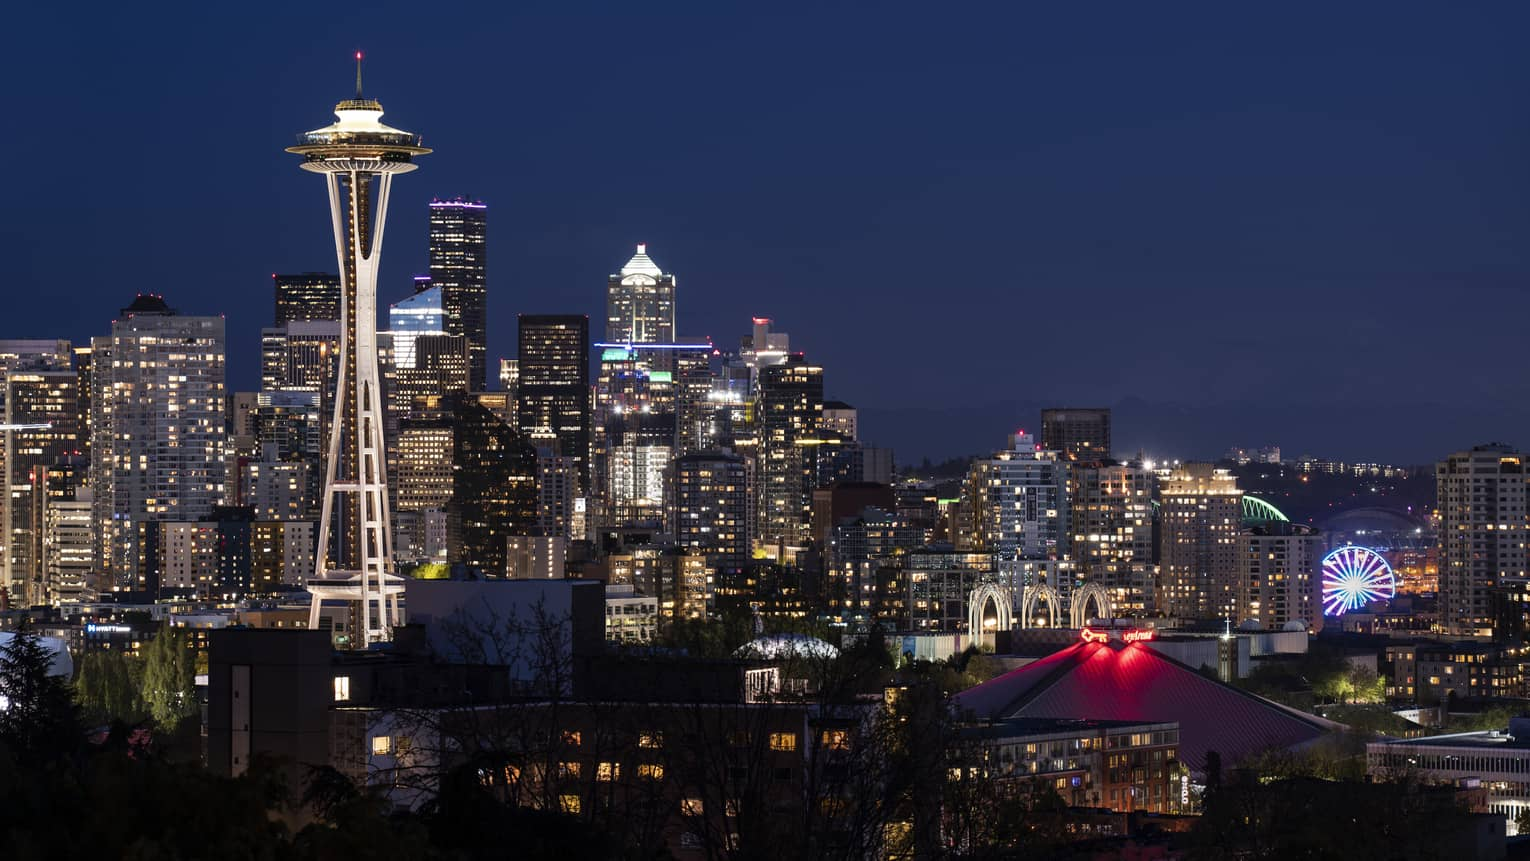 The city of Seattle and the Space Needle are illuminated at night